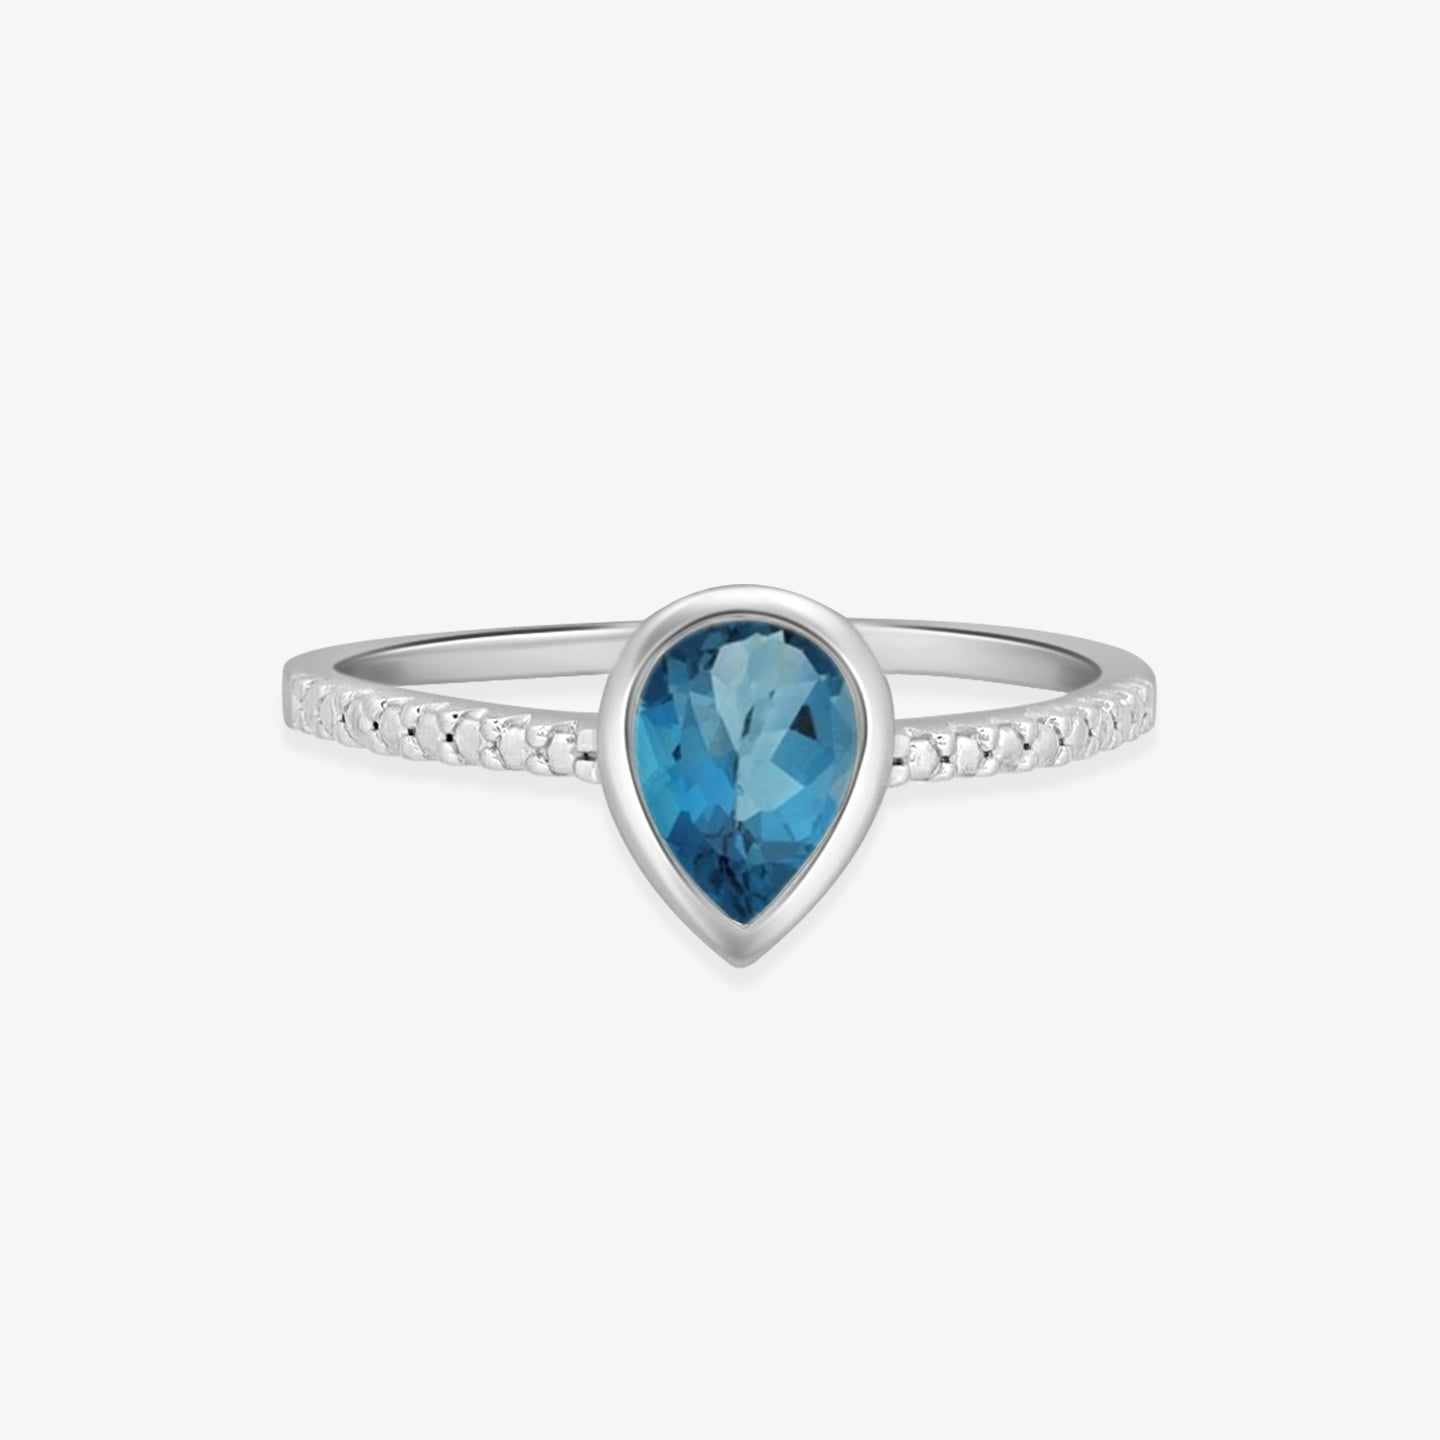 Blue Topaz Gem Stone Ring For Women - estellacollection